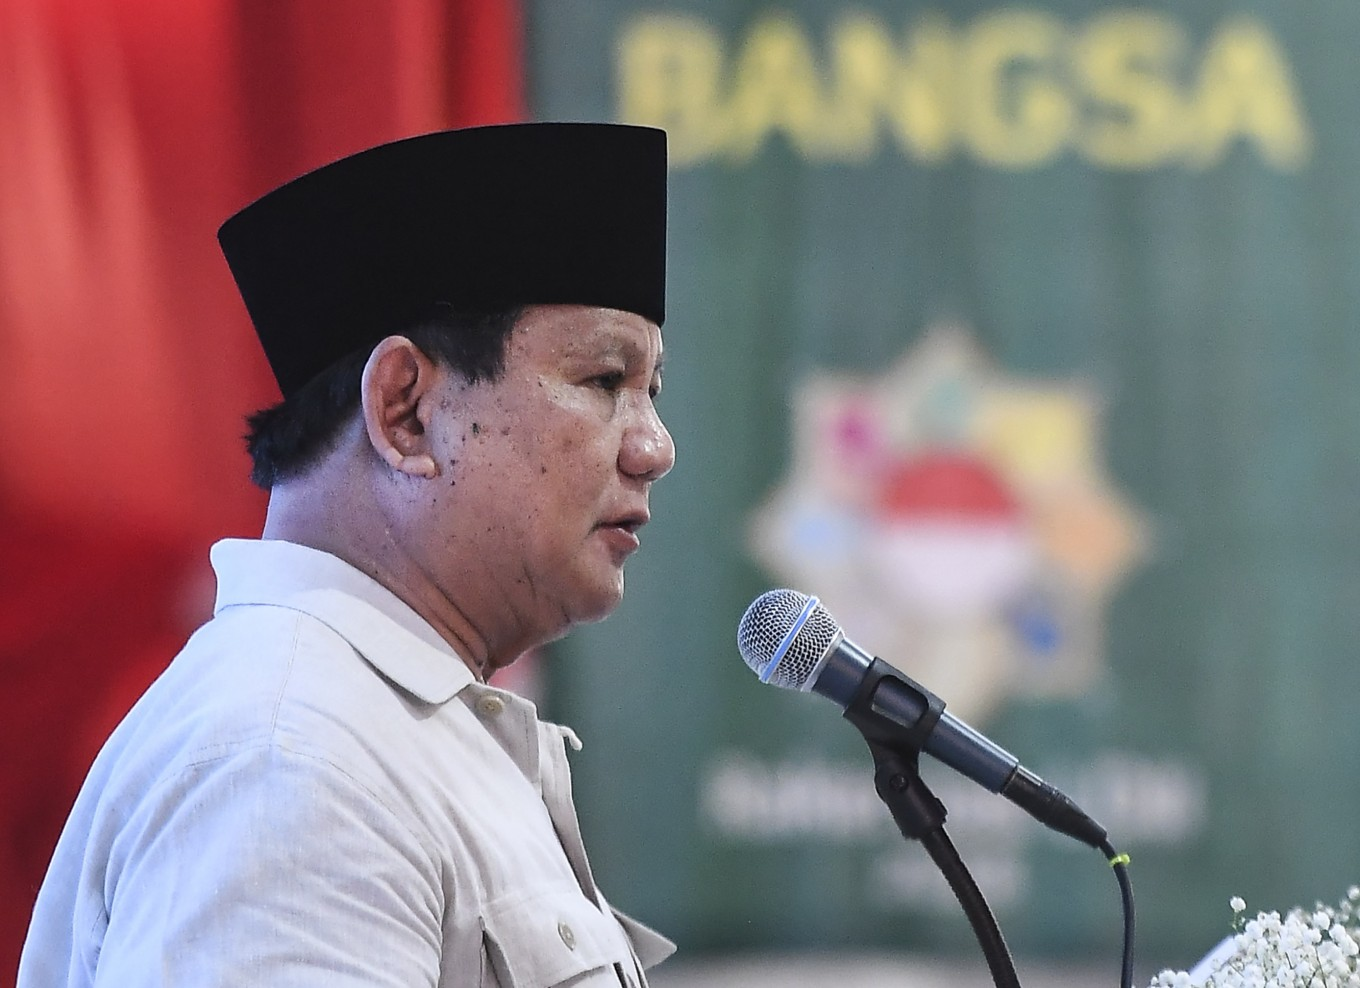 Prabowo's campaign pledge to stop imports sparks debate